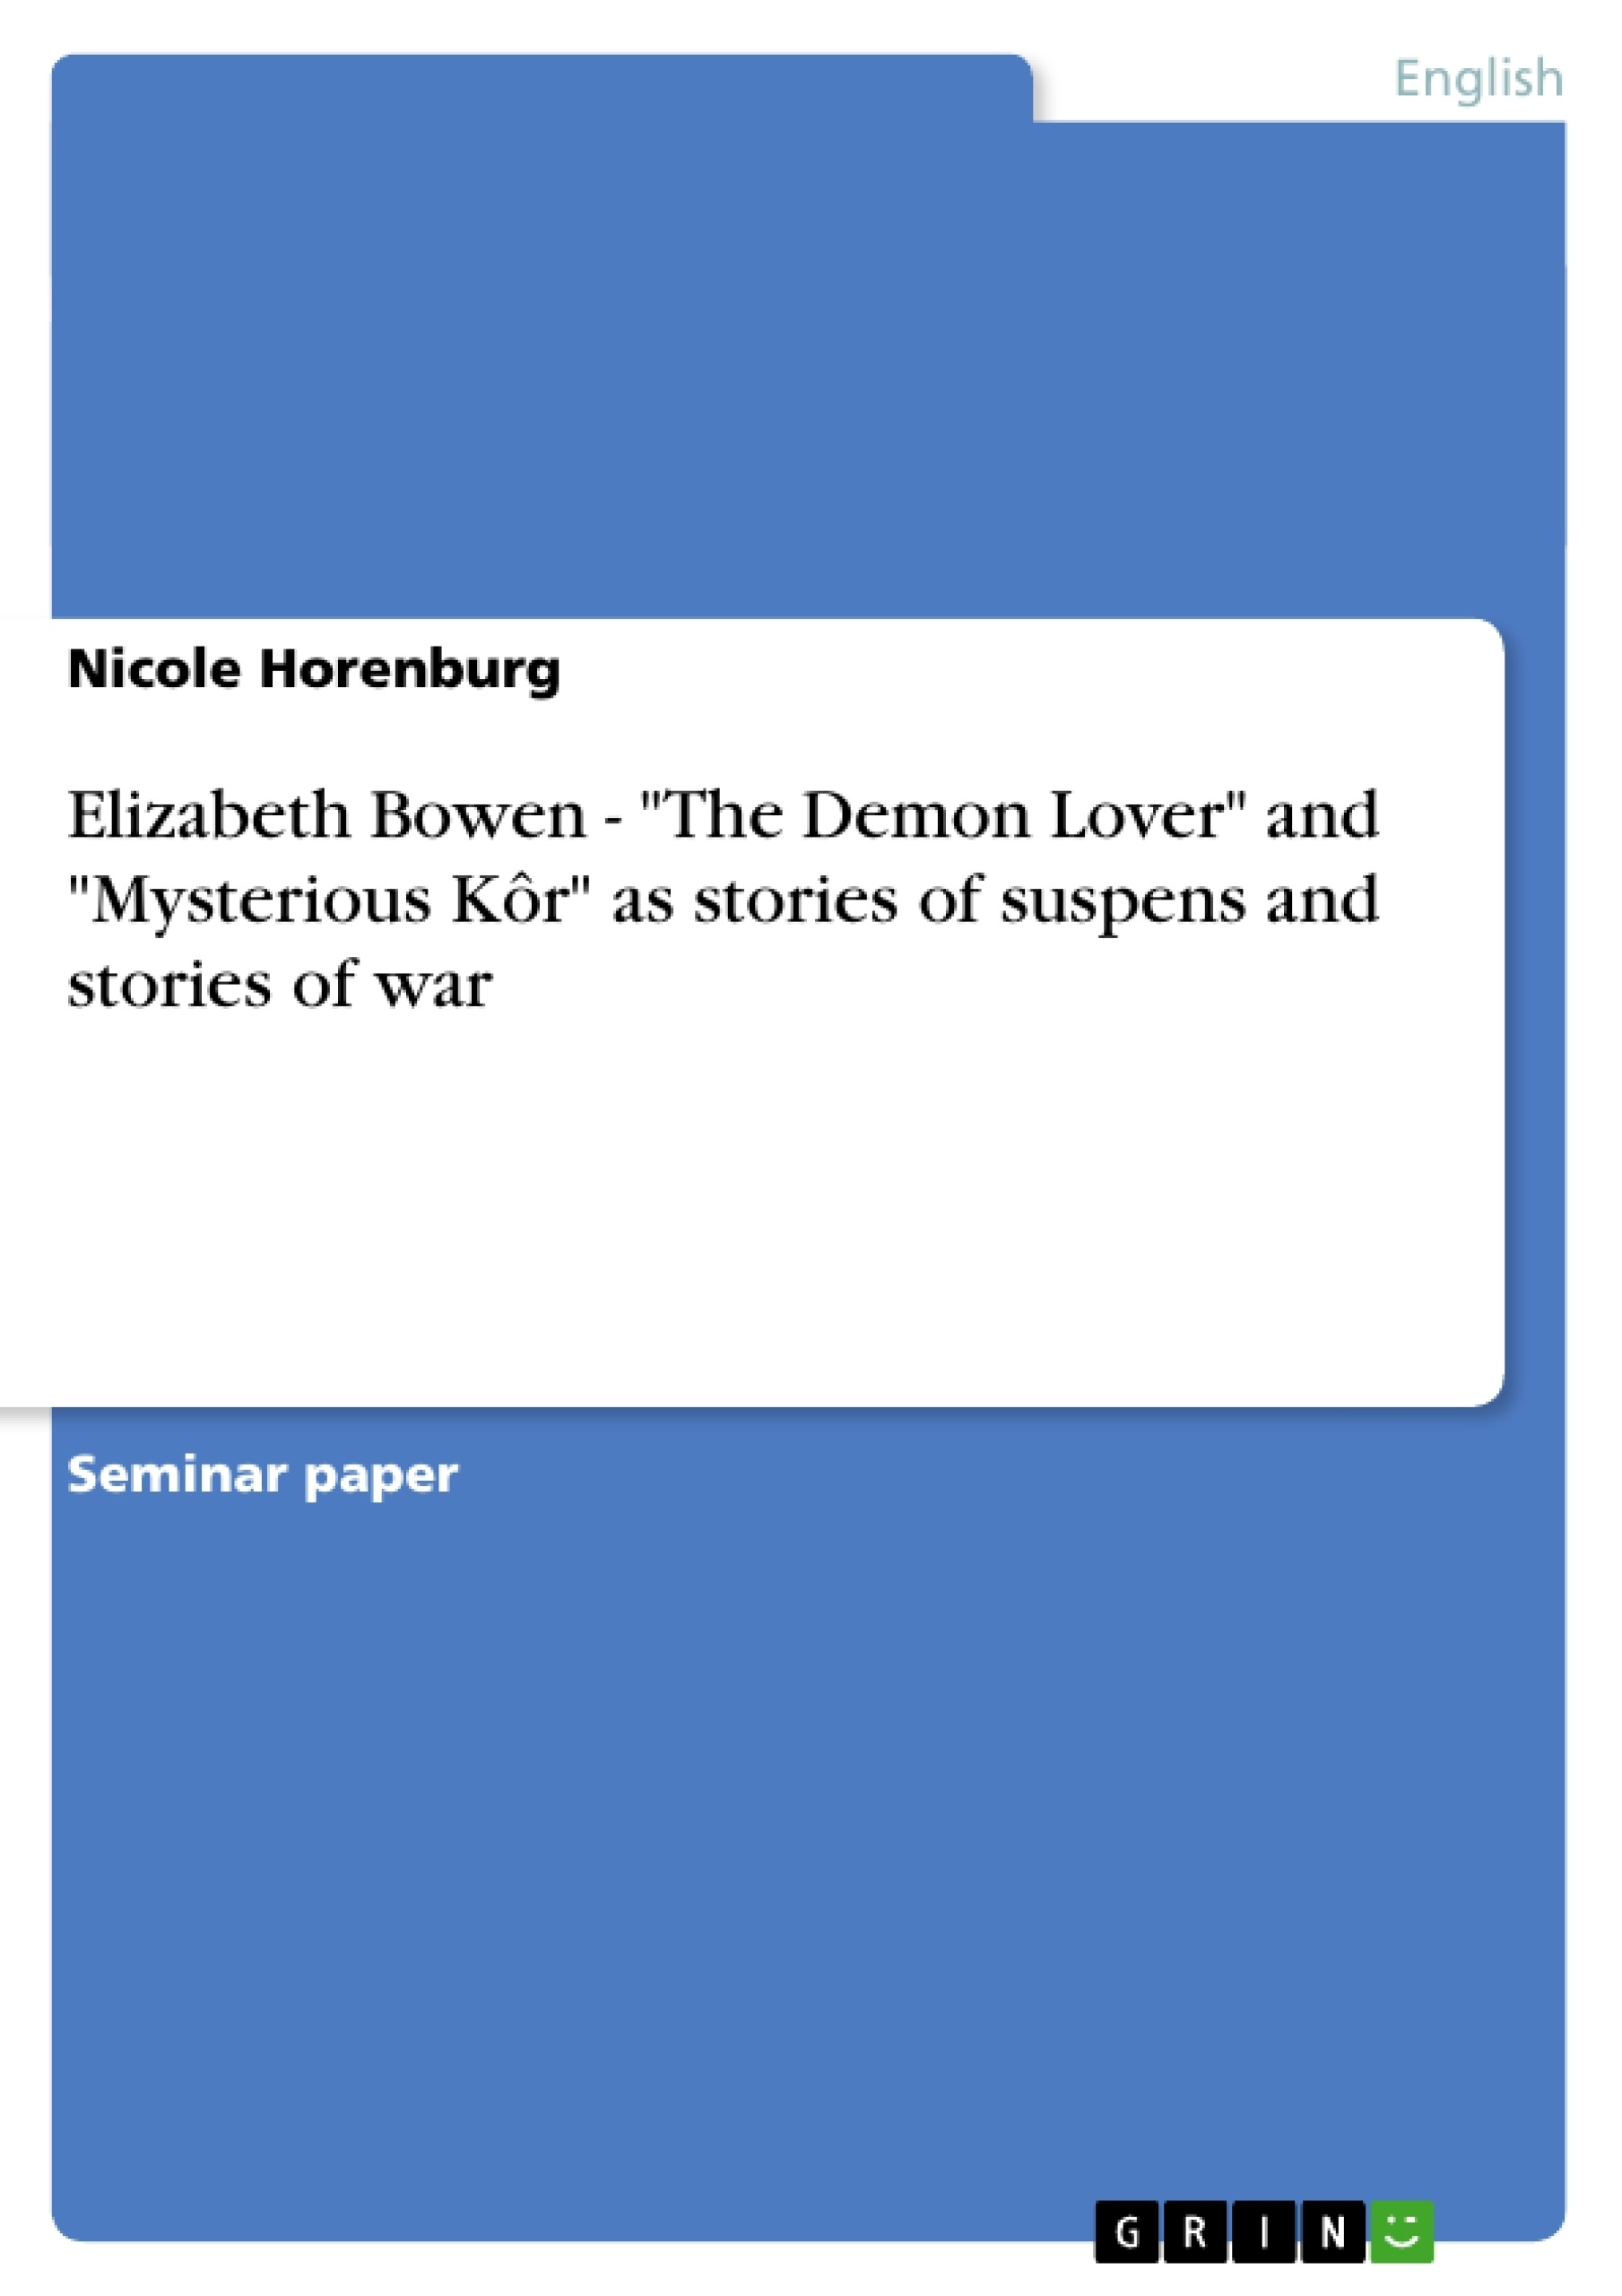 """Title: Elizabeth Bowen - """"The Demon Lover"""" and """"Mysterious Kôr"""" as stories of suspens and stories of war"""